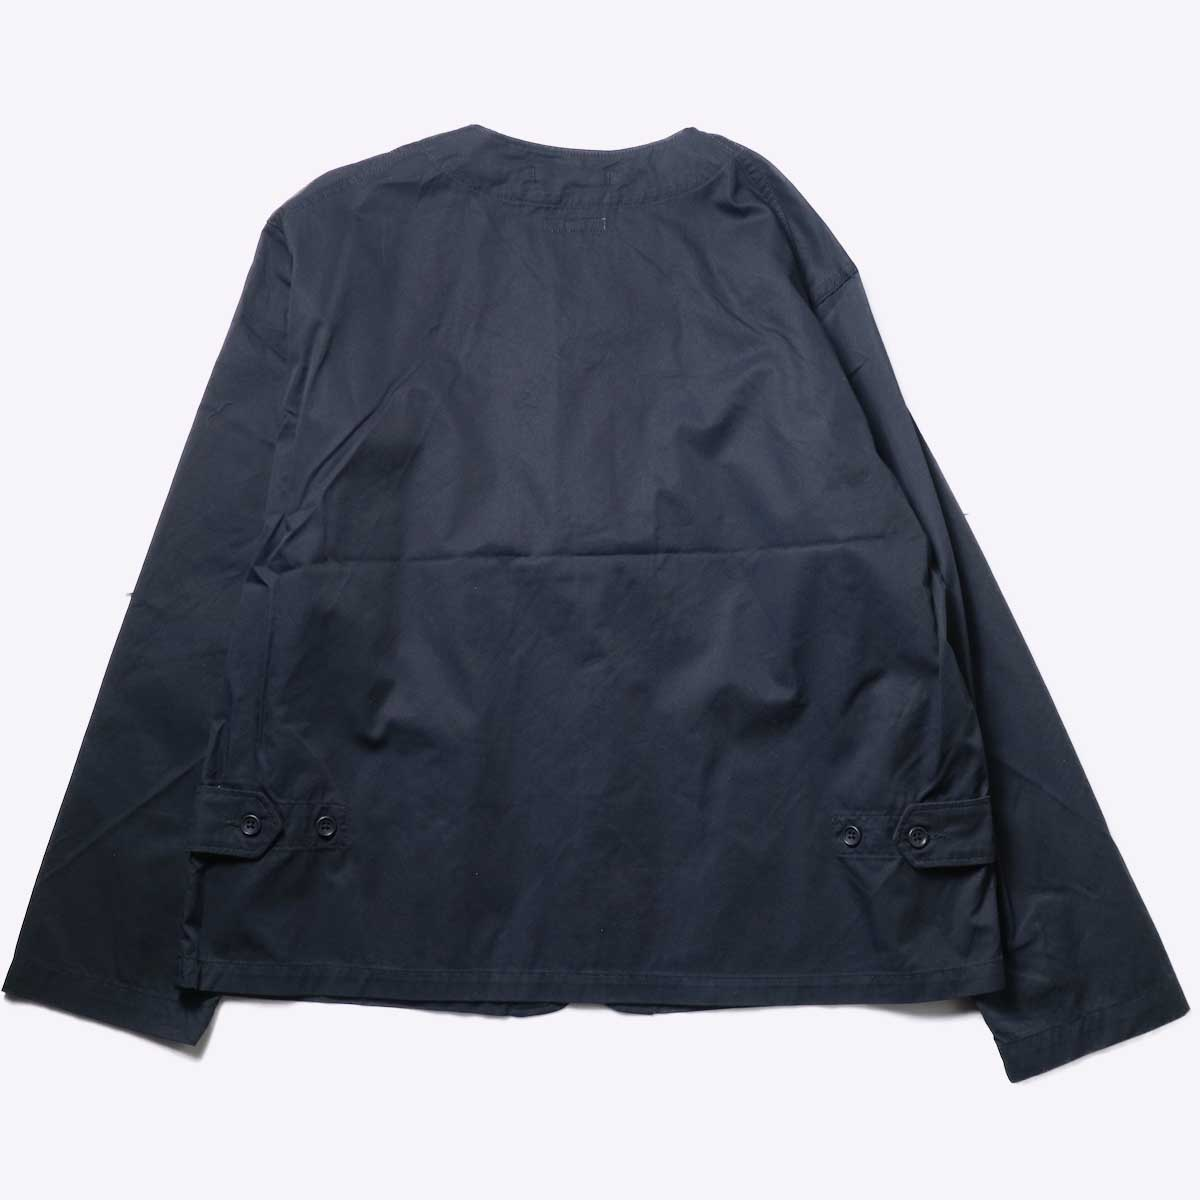 Engineered Garments / Cardigan Jacket -High Count Twill (Black)背面